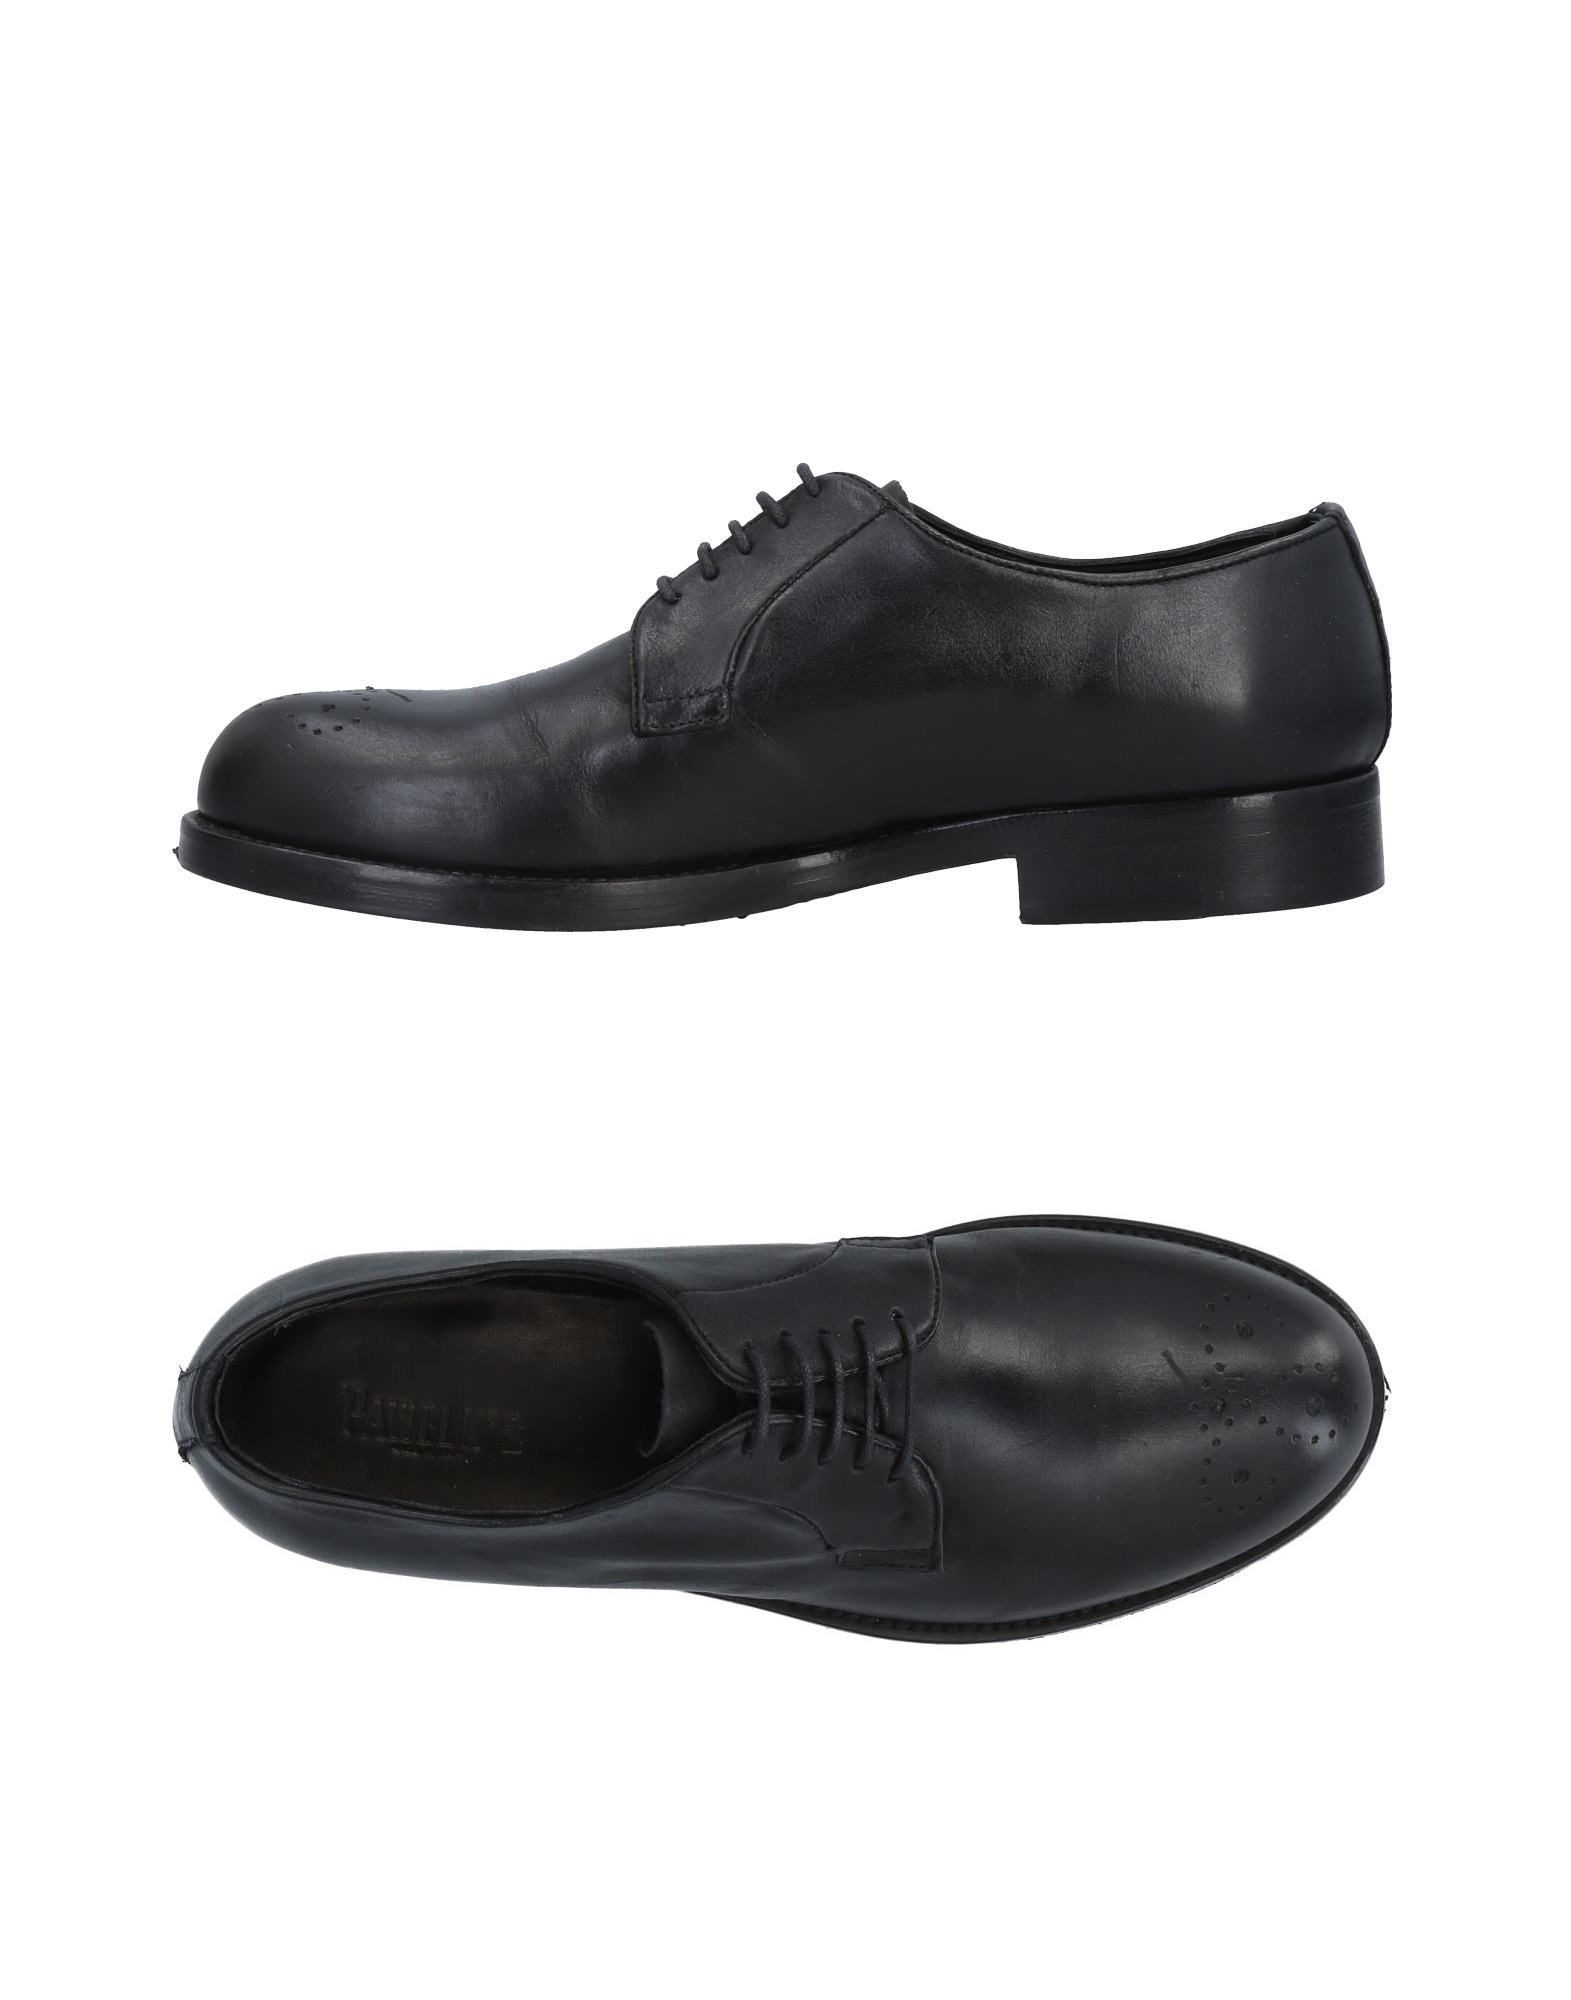 PAWELK'S Laced Shoes in Black